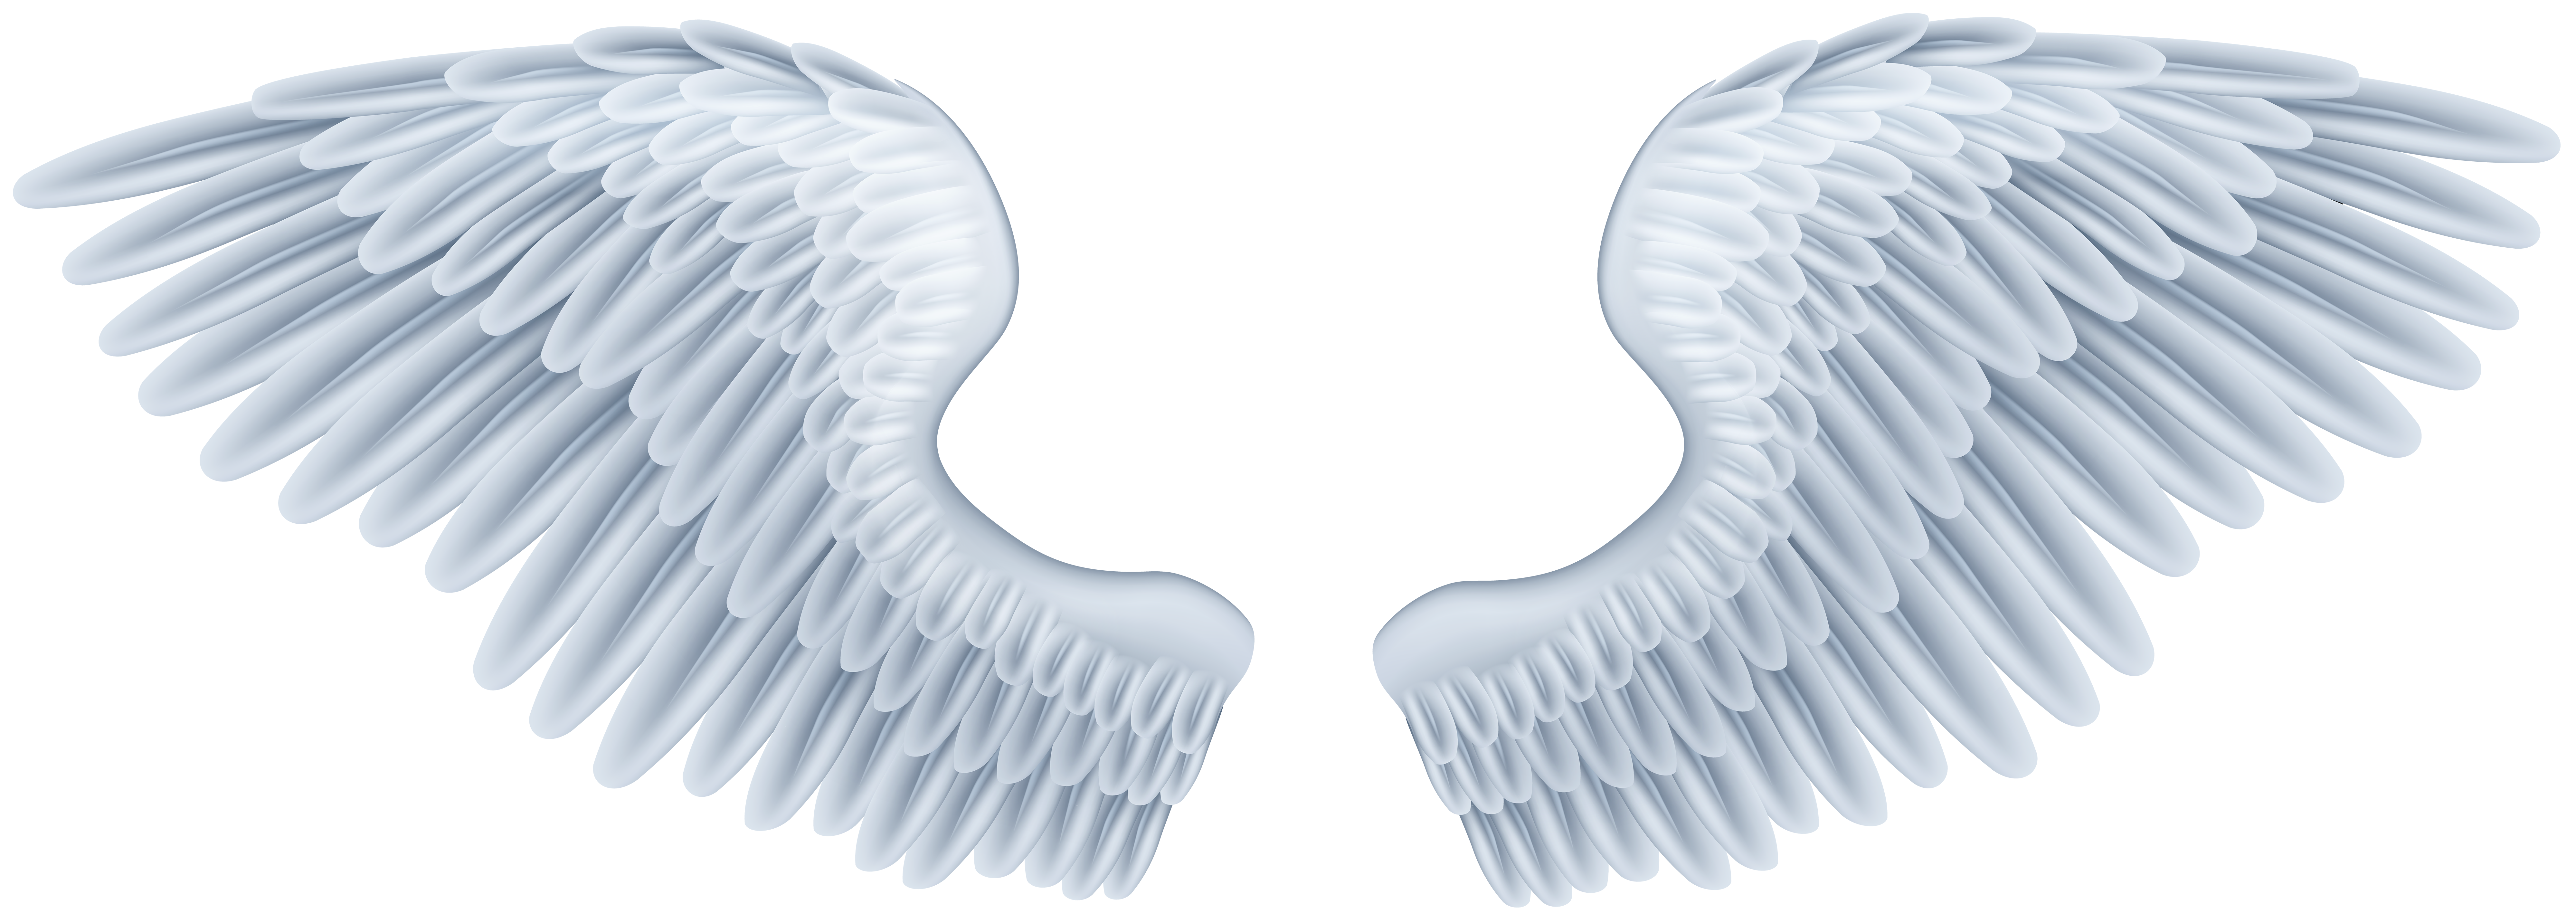 Heaven clipart wing. Angel wings png clip